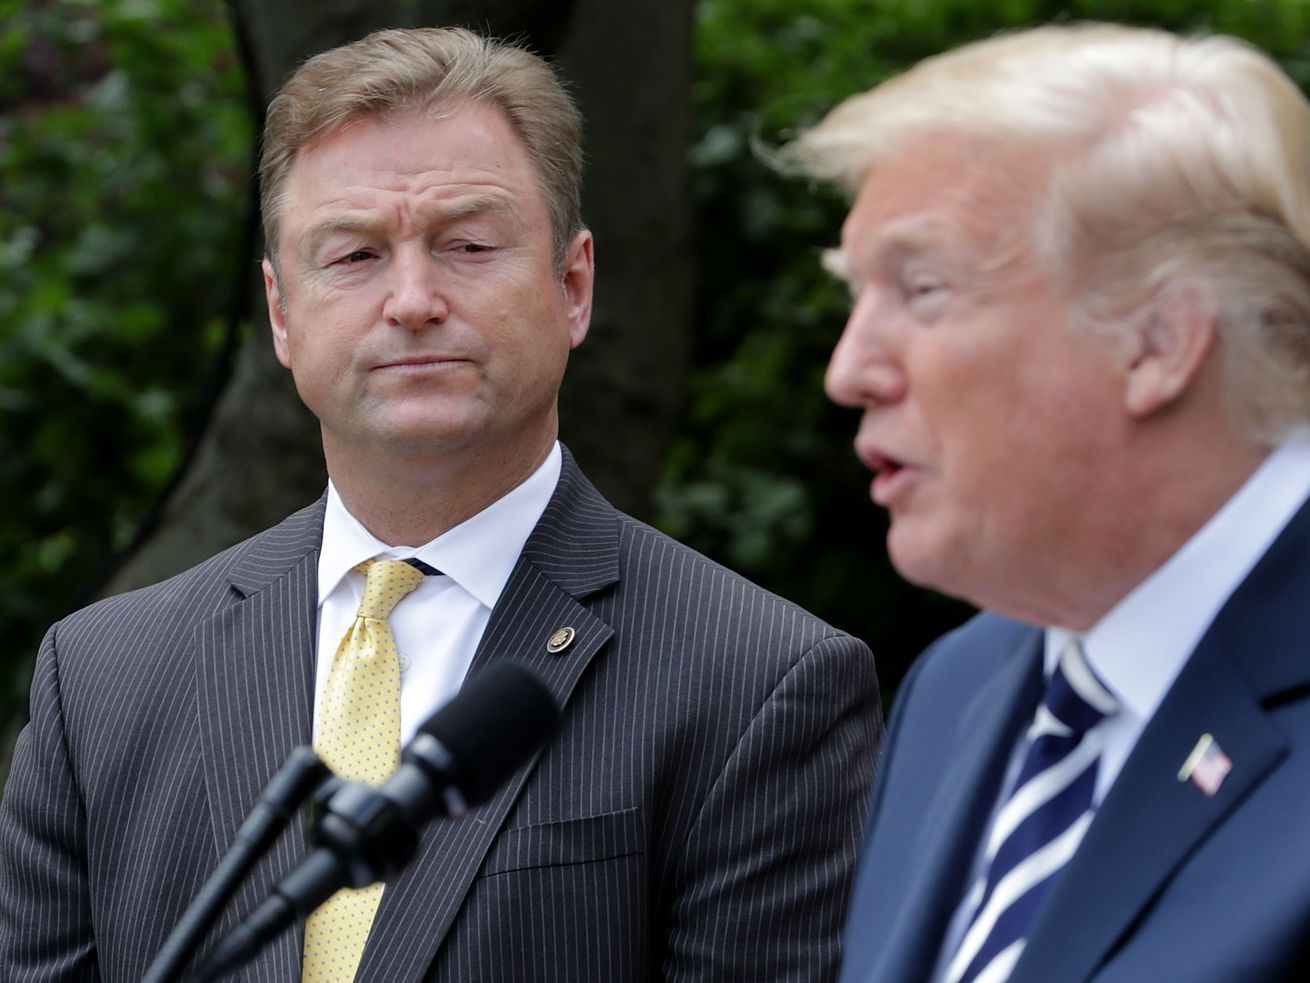 Sen. Dean Heller once said another Trump Supreme Court pick would help turn out Republican voters.